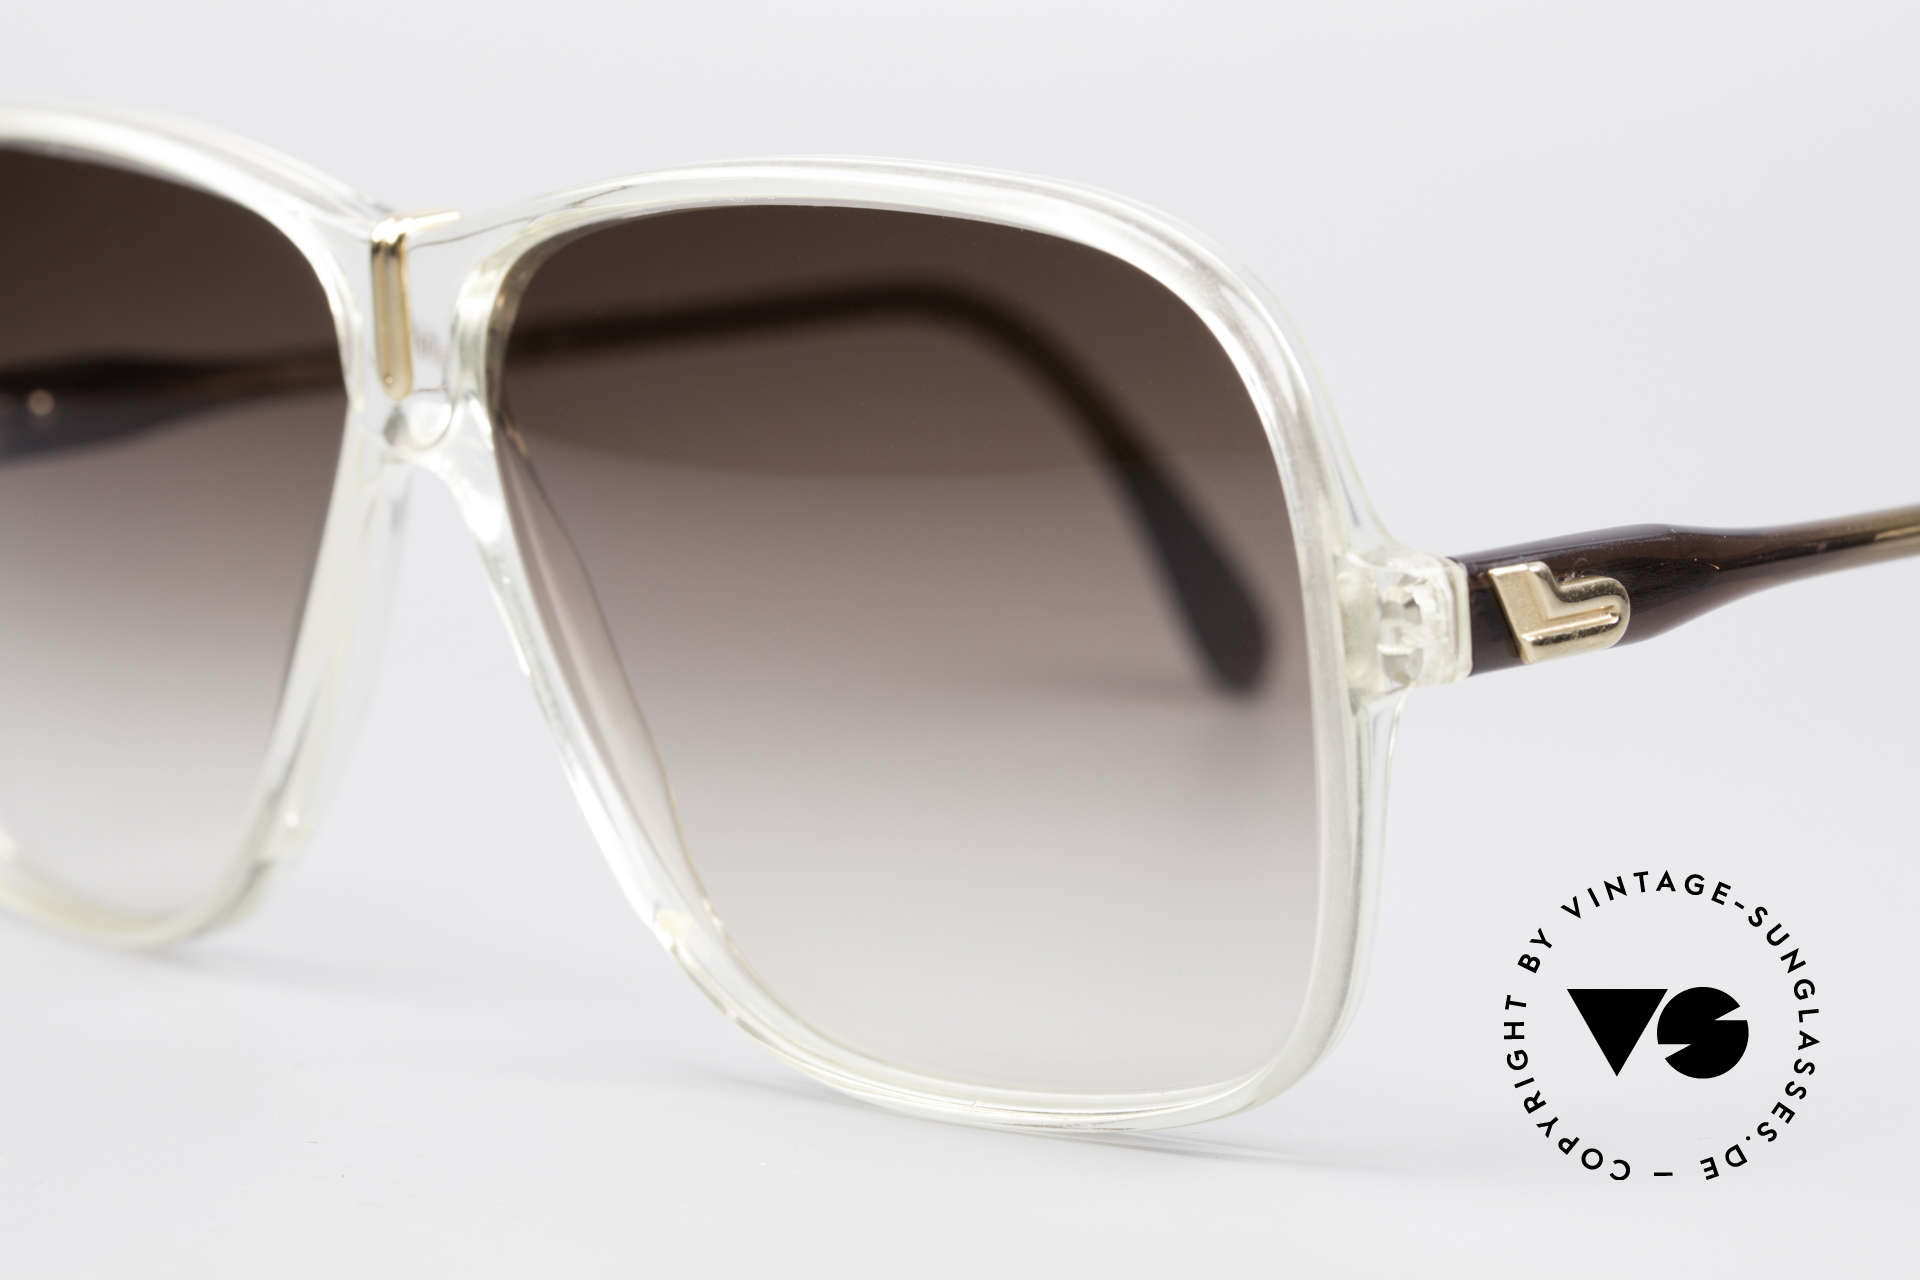 Cazal 621 West Germany Sunglasses, new old stock (like all our W.Germany Originals), Made for Men